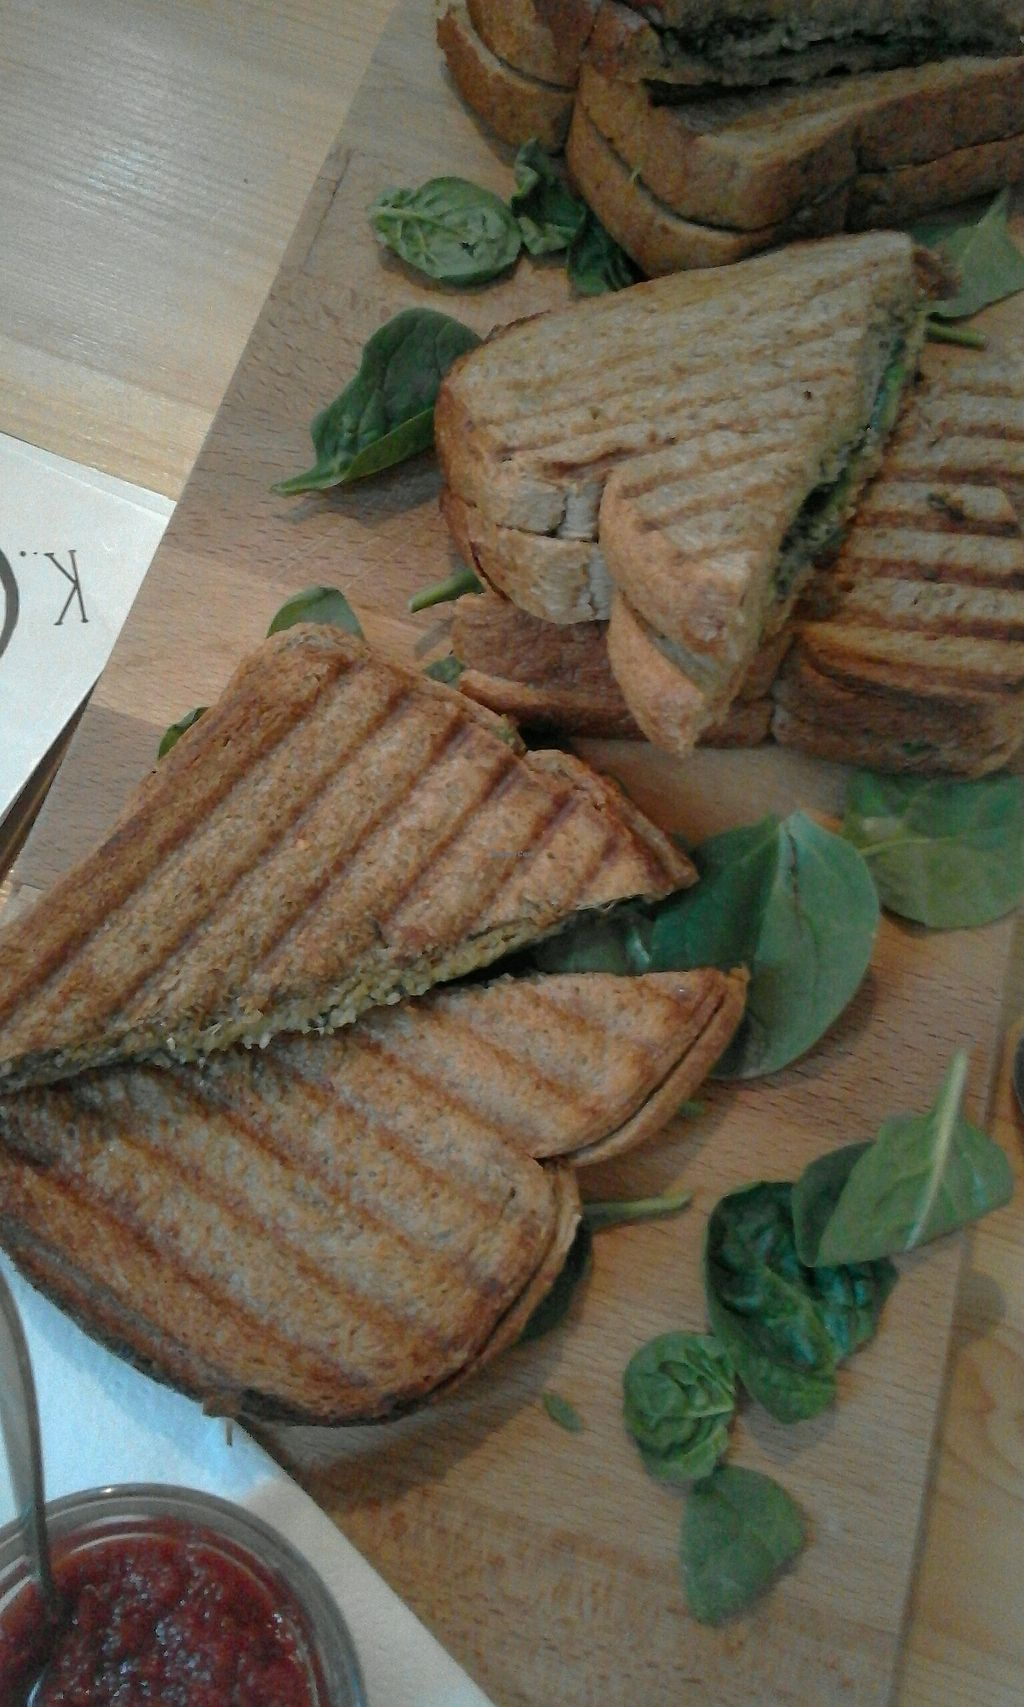 """Photo of Koffiebar Sowieso  by <a href=""""/members/profile/v_mdj"""">v_mdj</a> <br/>vegan pesto, avocado, spinach sandwich <br/> December 9, 2017  - <a href='/contact/abuse/image/89076/333869'>Report</a>"""